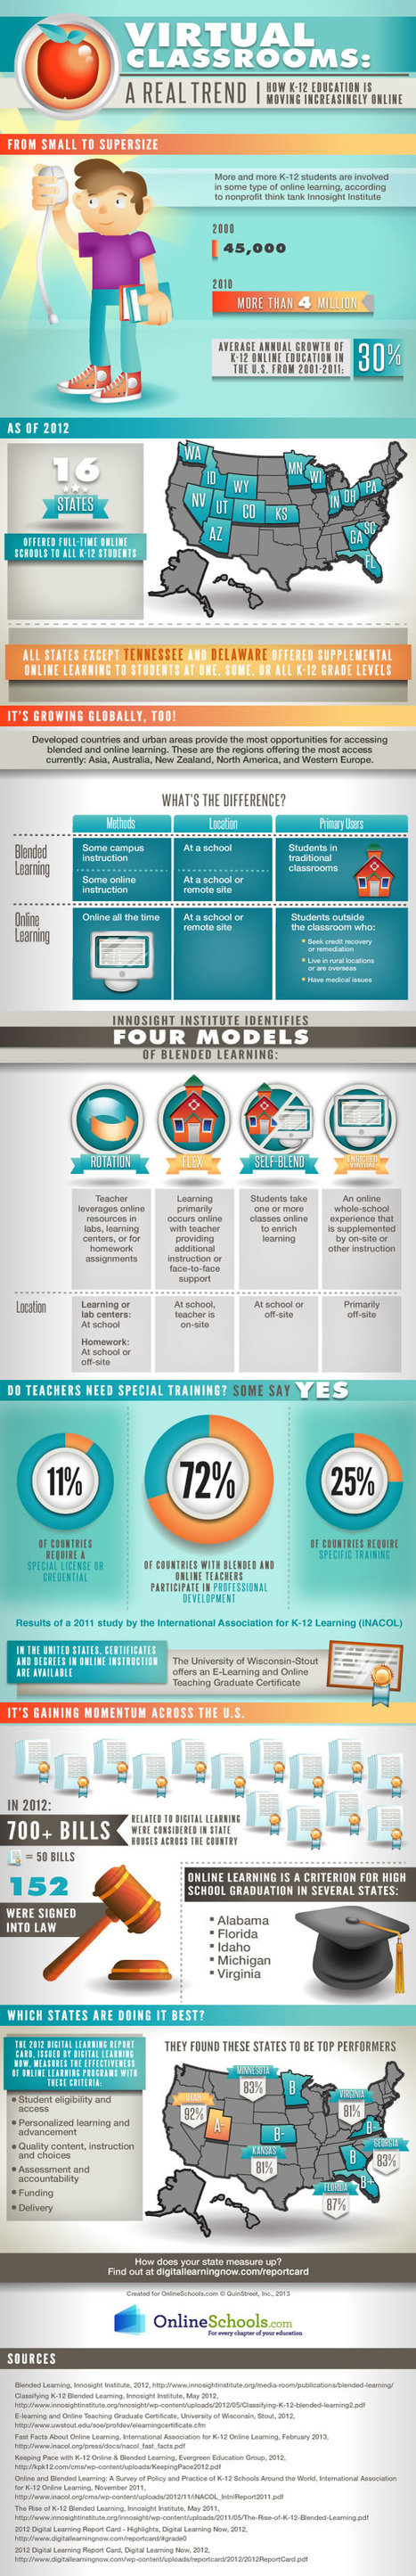 The Teacher's Quick Guide To Blended Learning [Infographic] | Pedalogica: educación y TIC | Scoop.it